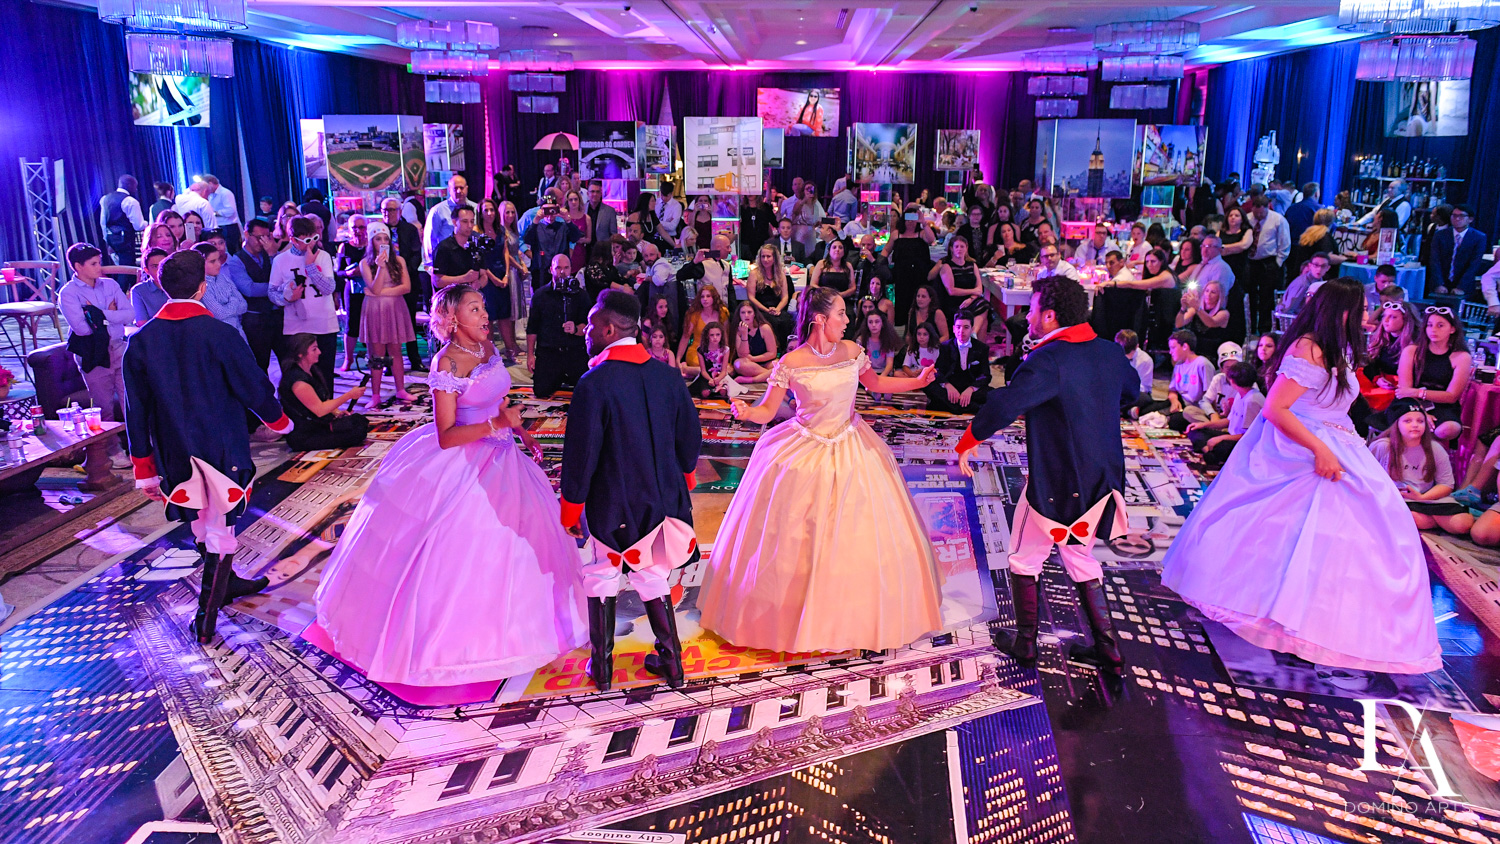 Hamilton at New York Theme Bat Mitzvah at Woodfield Country Club, Boca Raton by Domino Arts Photography